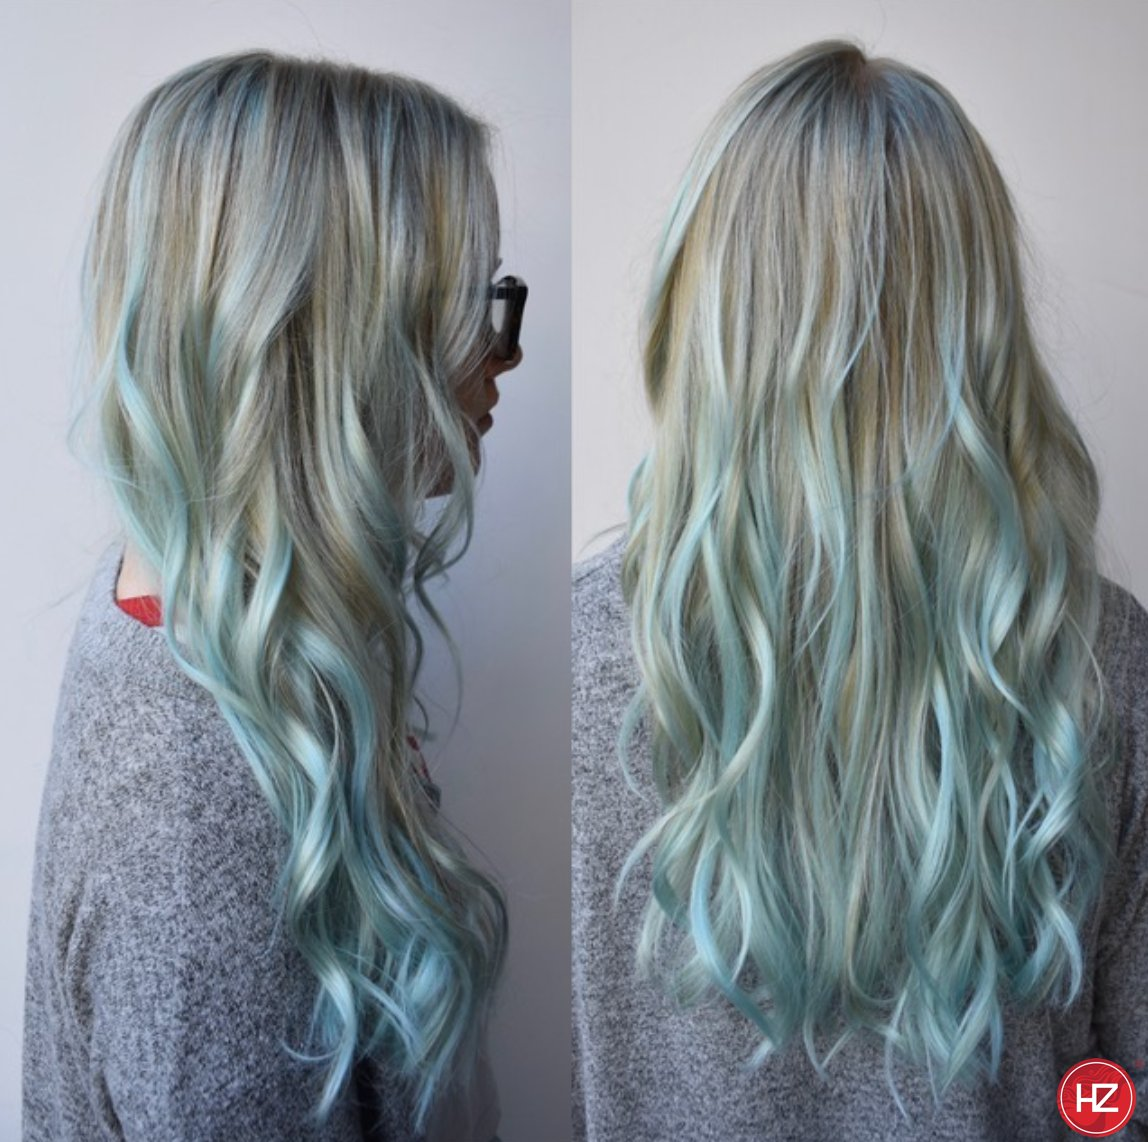 Hairzoo On Twitter Hues Of Blue By Diana At Our Hairzoo